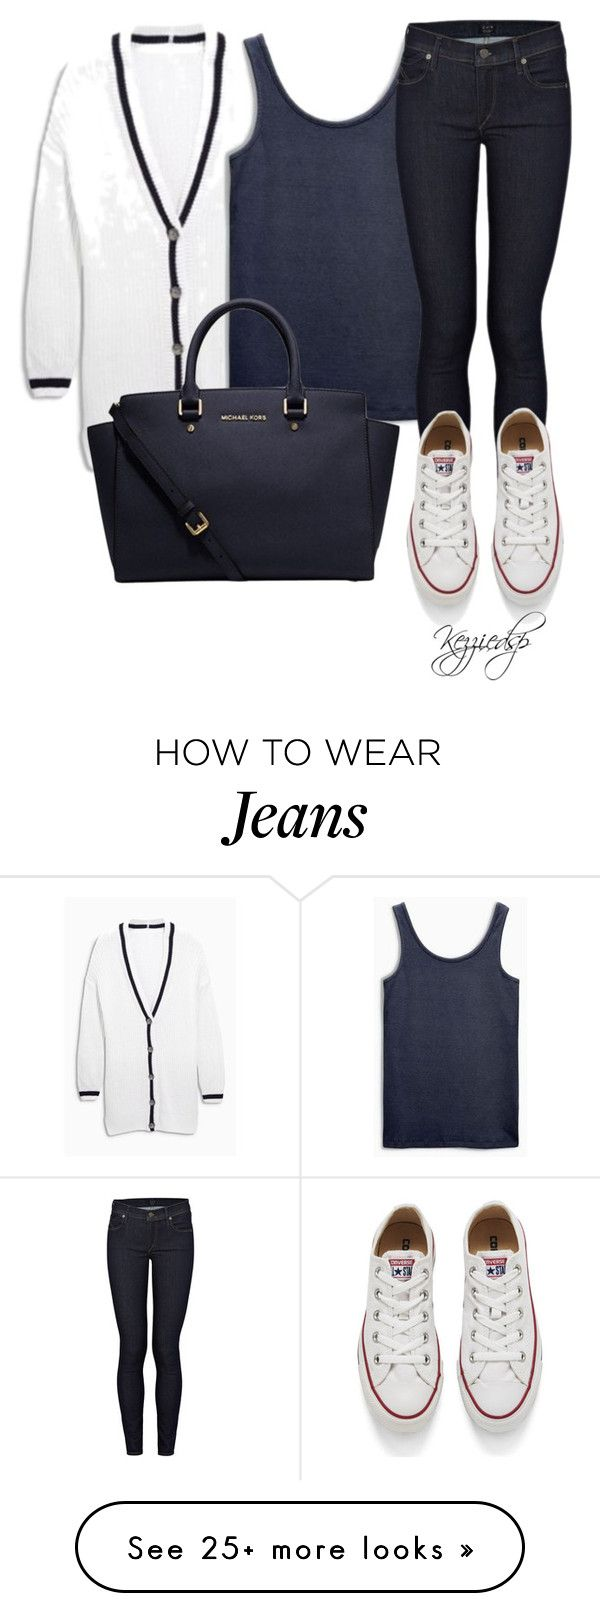 """""""Next cricket cardigan"""" by kezziedsp on Polyvore featuring Citizens of Humanity, Converse, Michael Kors, women's clothing, women, female, woman, misses and juniors"""